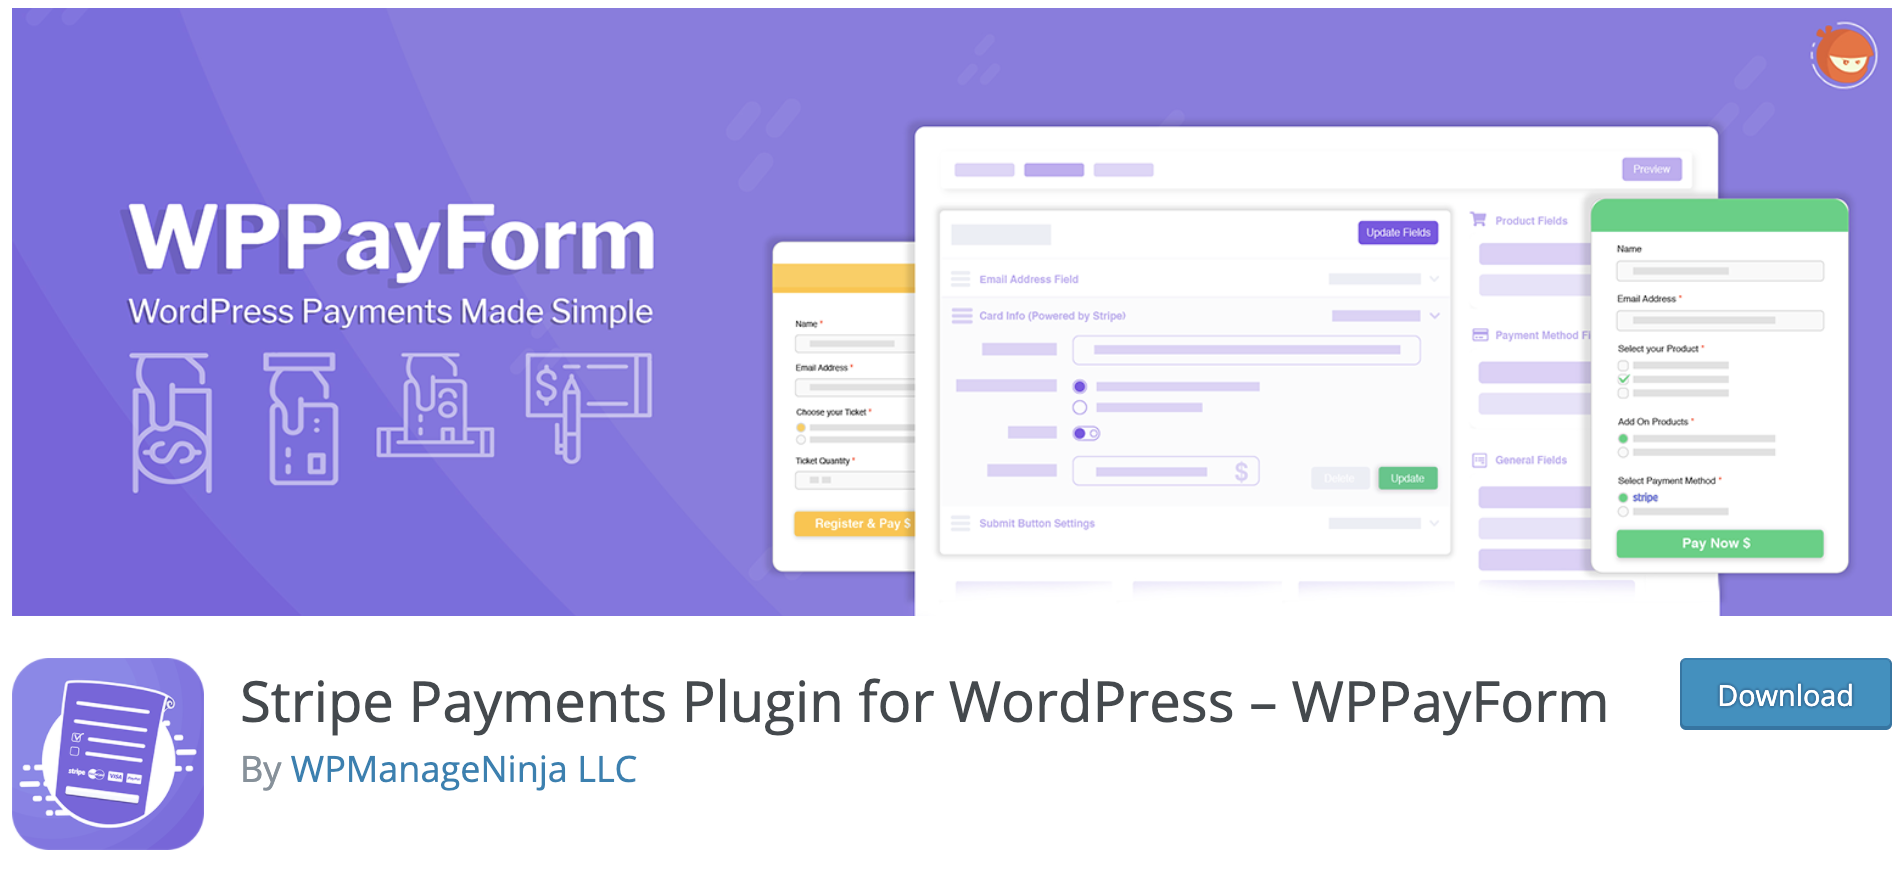 wp pay form payment solution plug in on wordpress